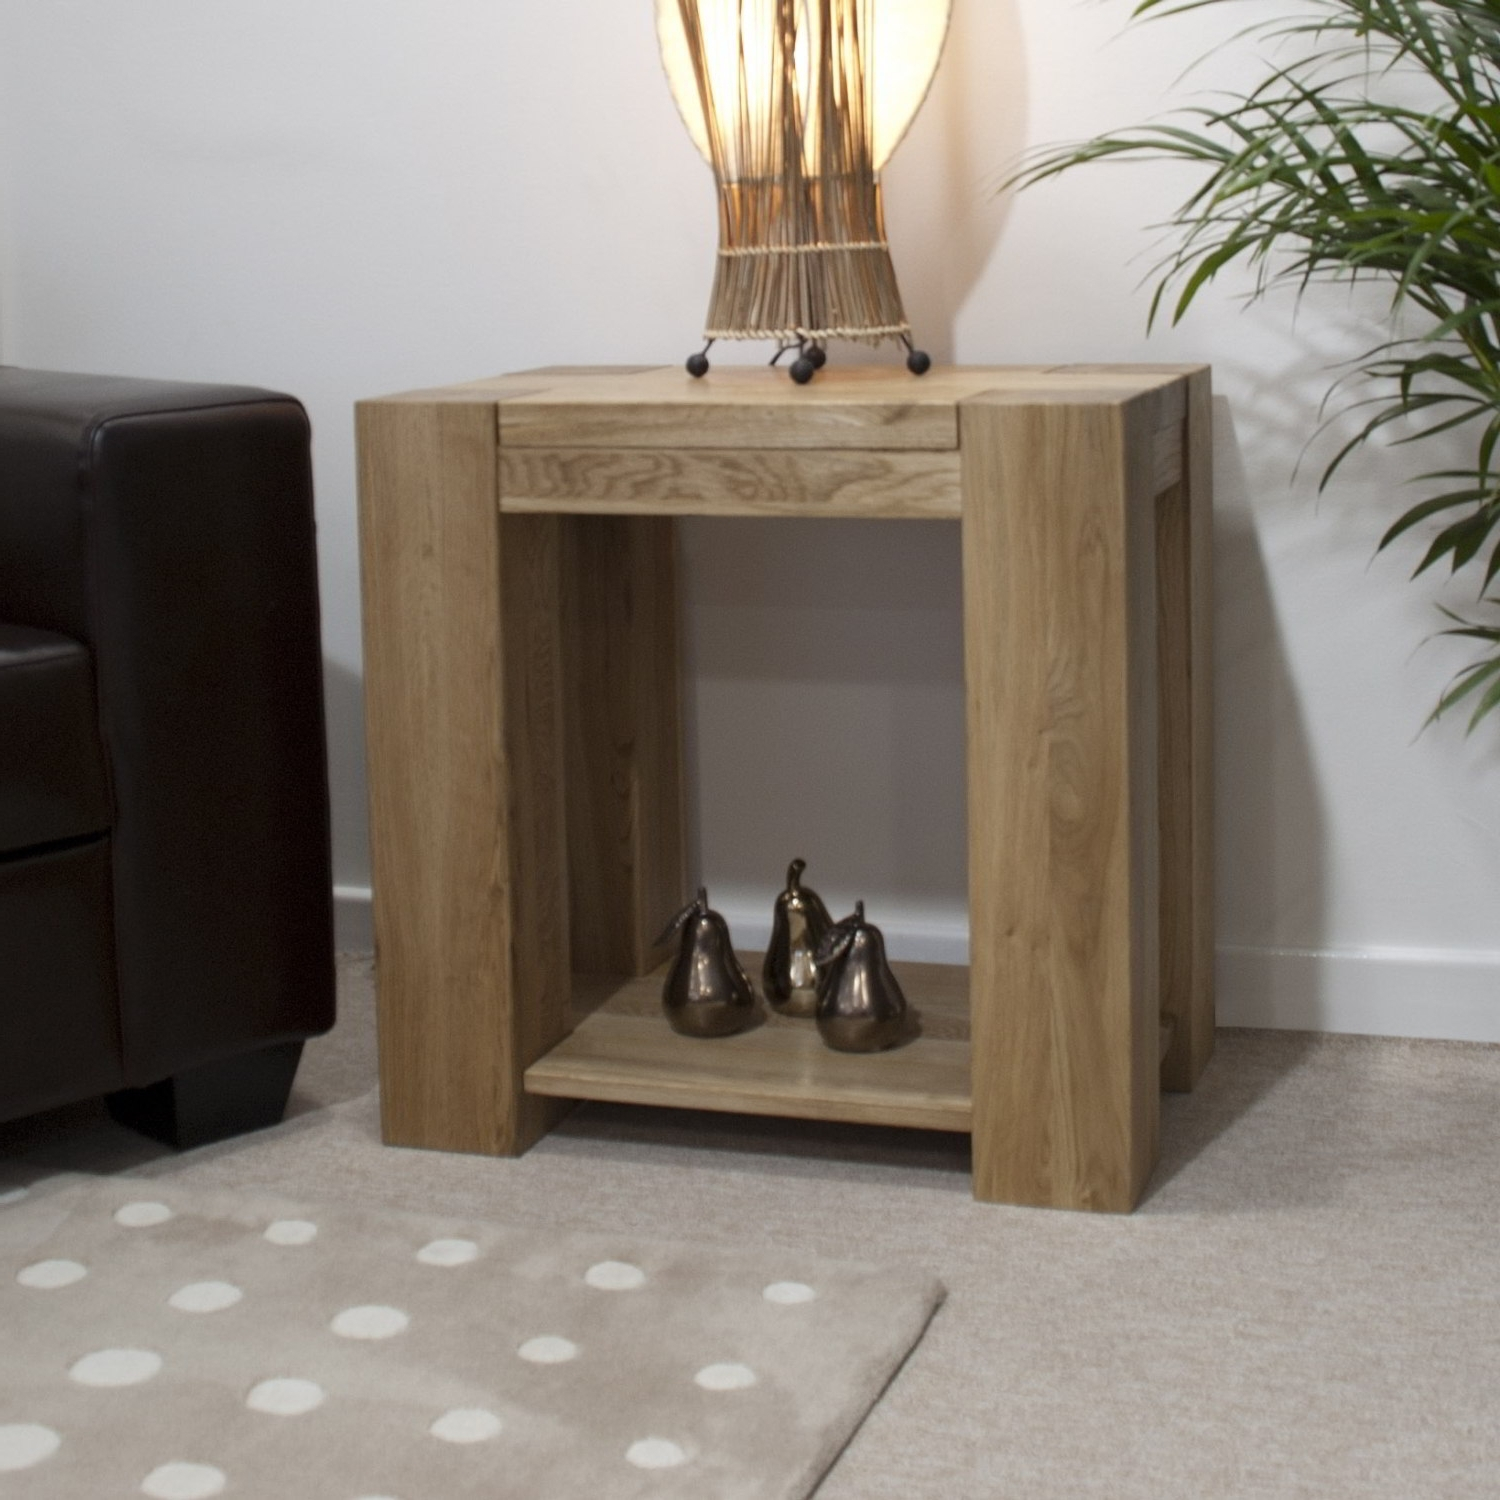 Coffee Tables: Solid Wood Table Reclaimed Dining Furniture Rustic Pertaining To Most Up To Date Living Room Coffee Table Lamps (View 4 of 20)